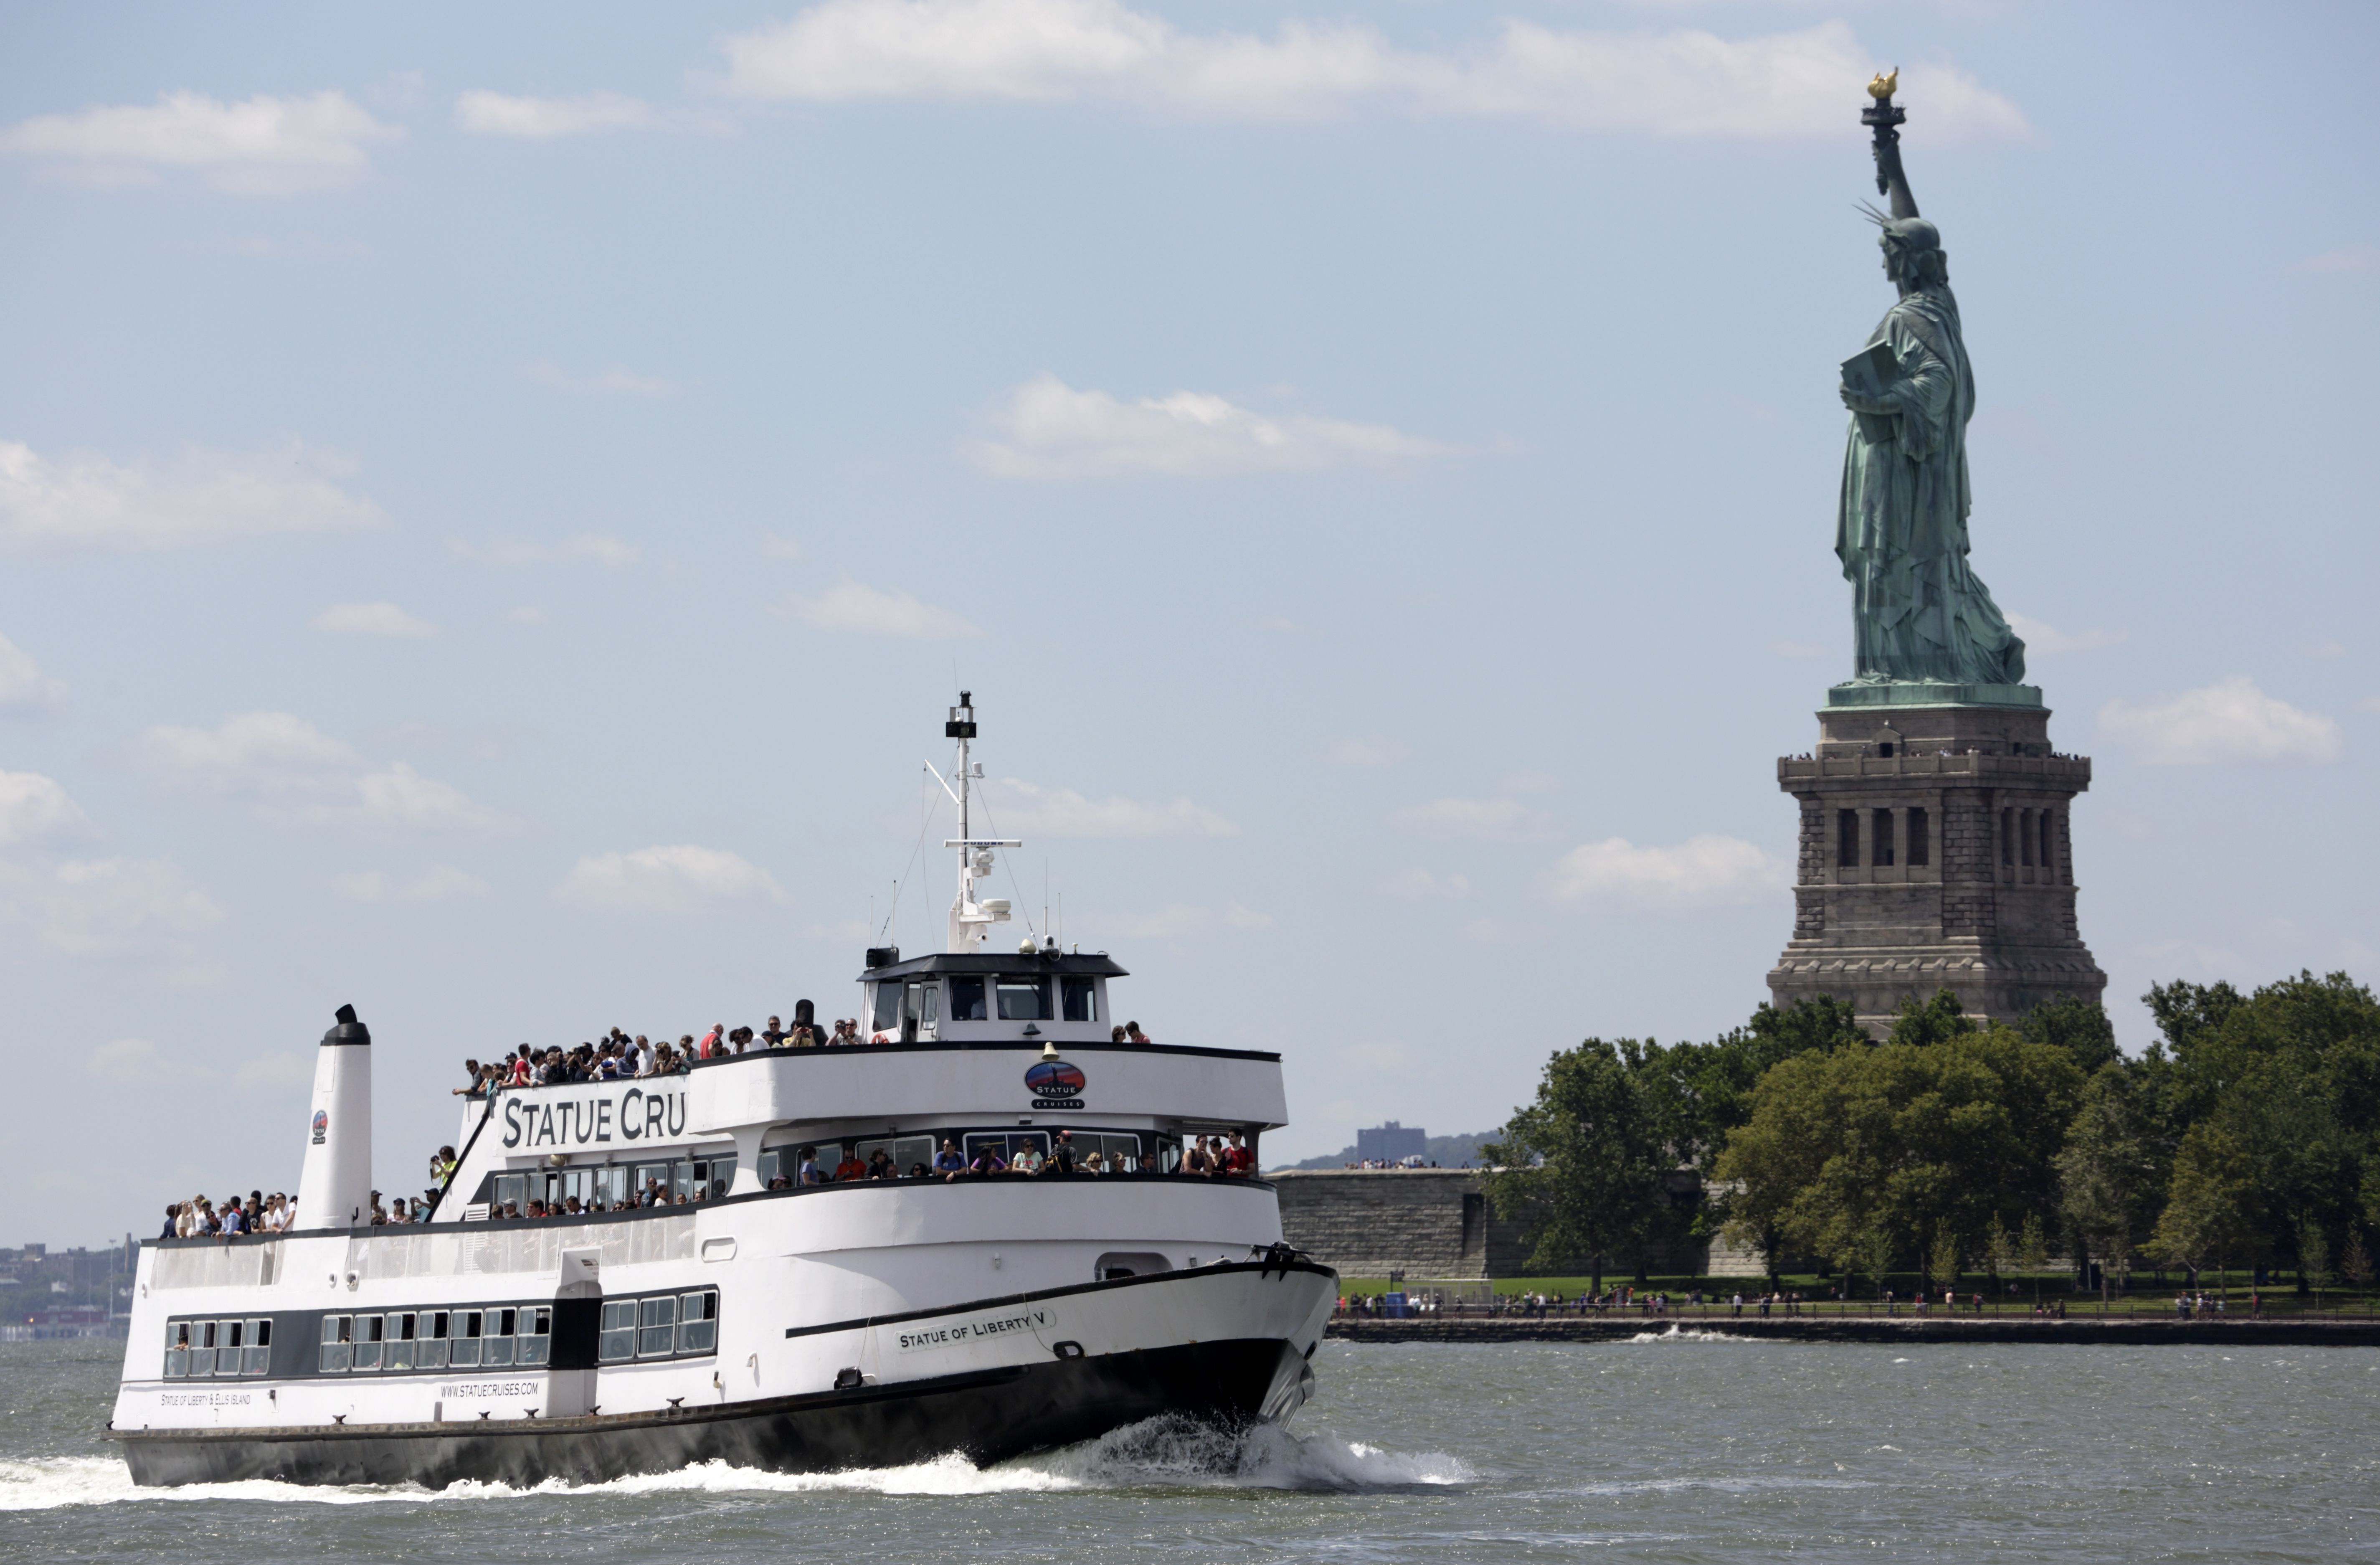 Statues of liberty and cruise ship